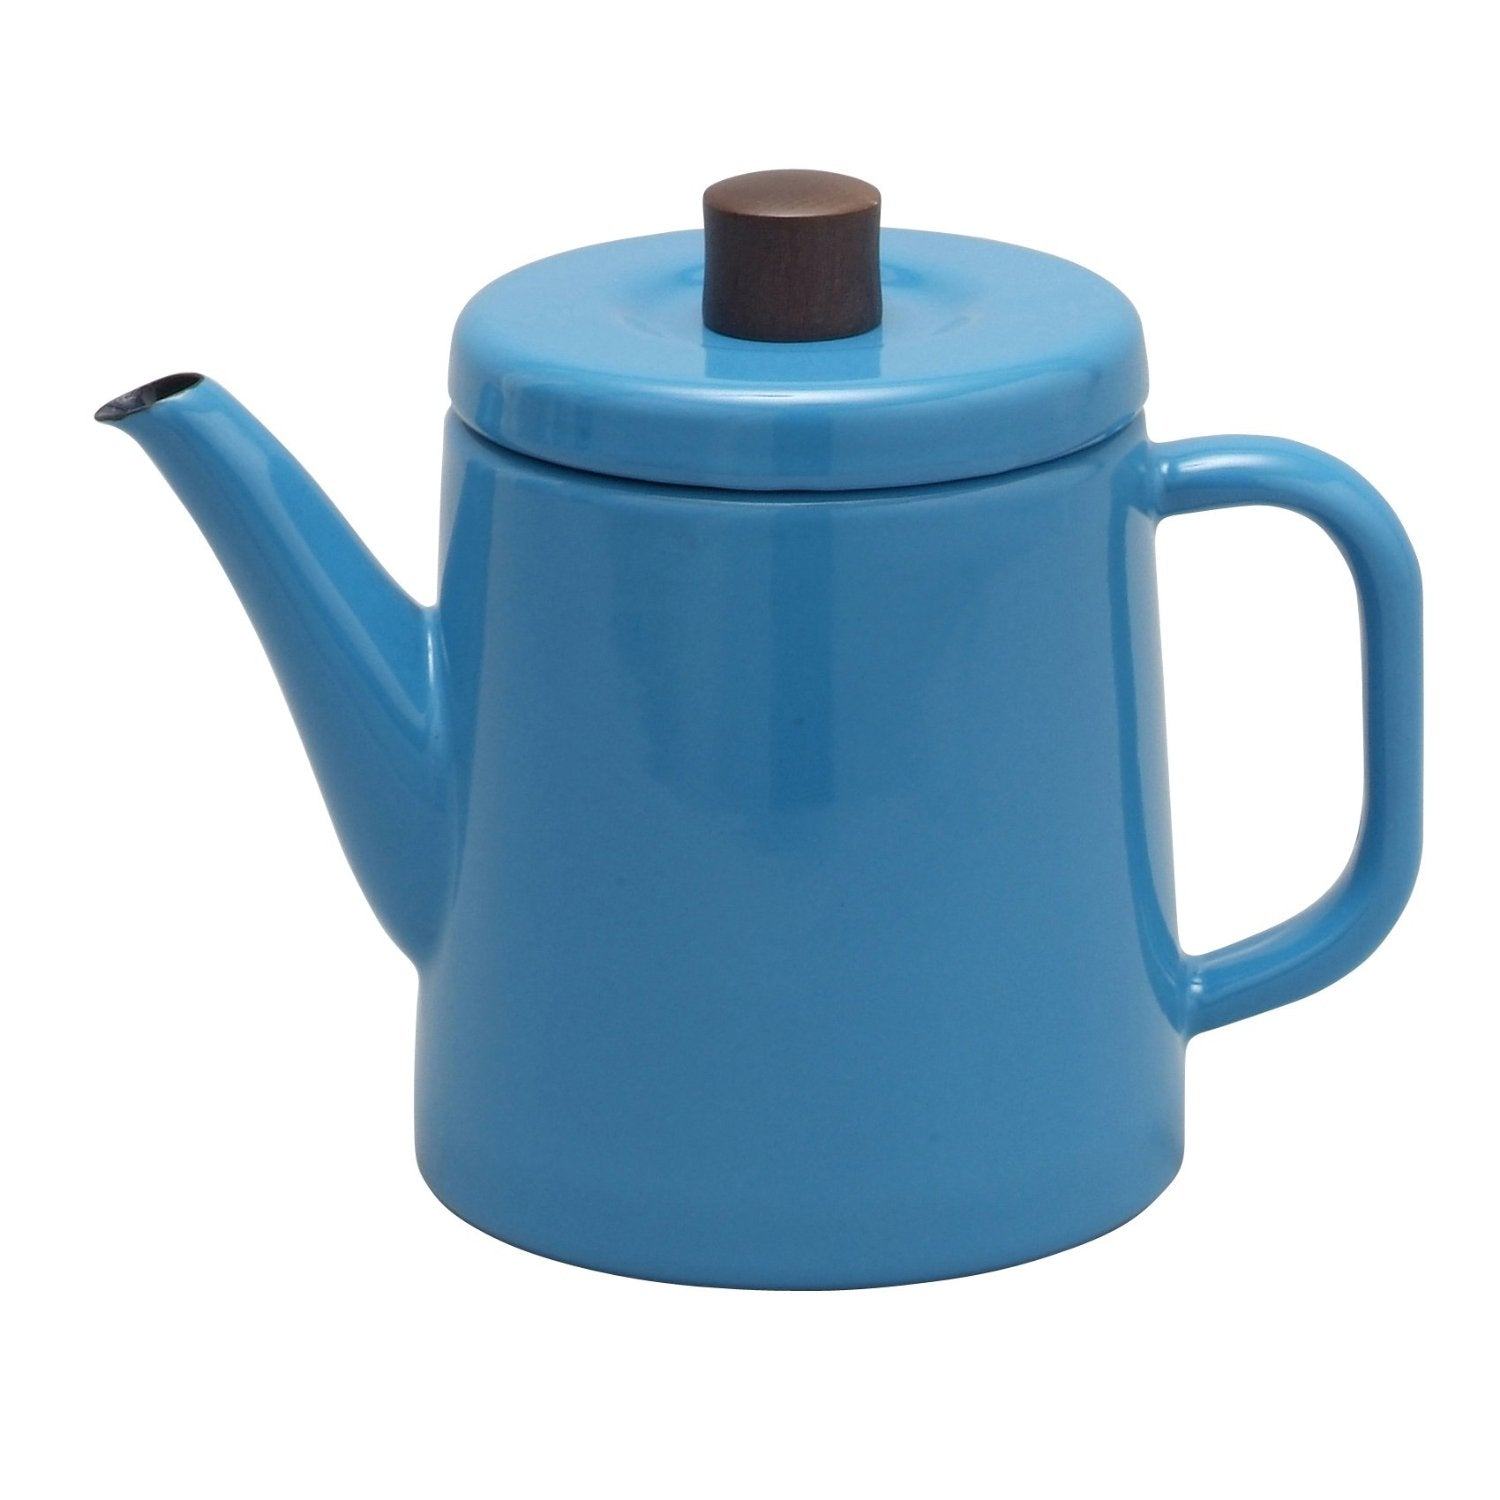 Enamel Teapot / Kettle (Blue)